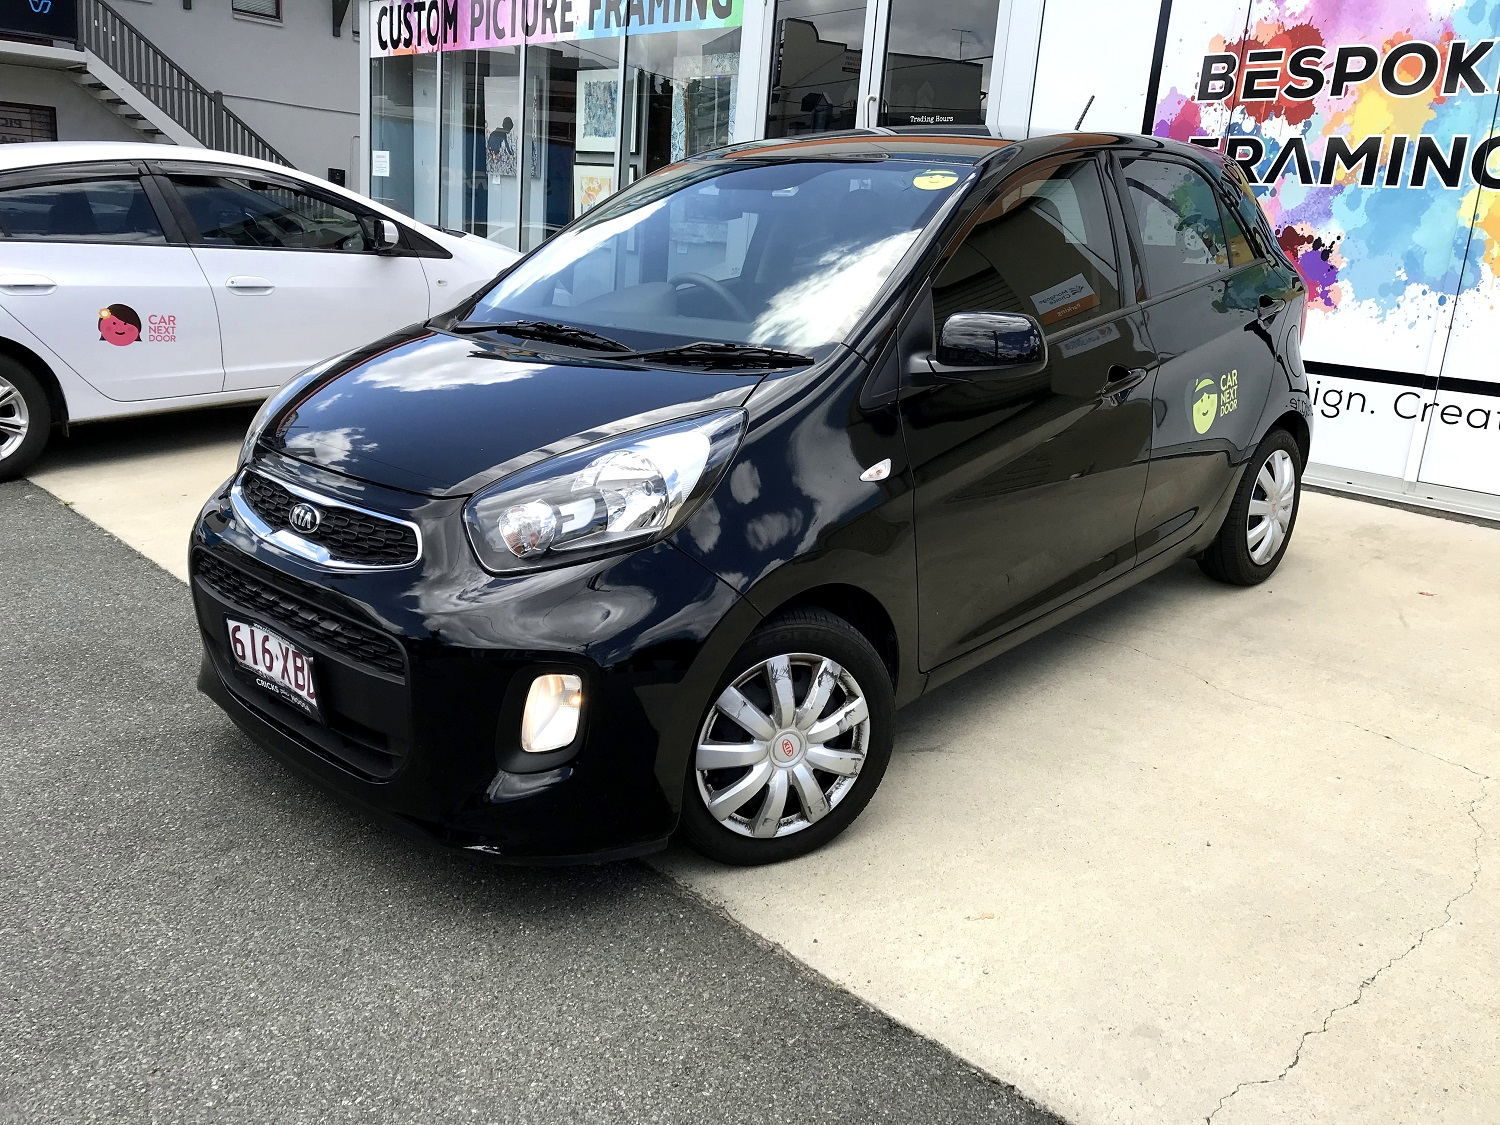 Picture of Caroline's 2016 Kia Picanto